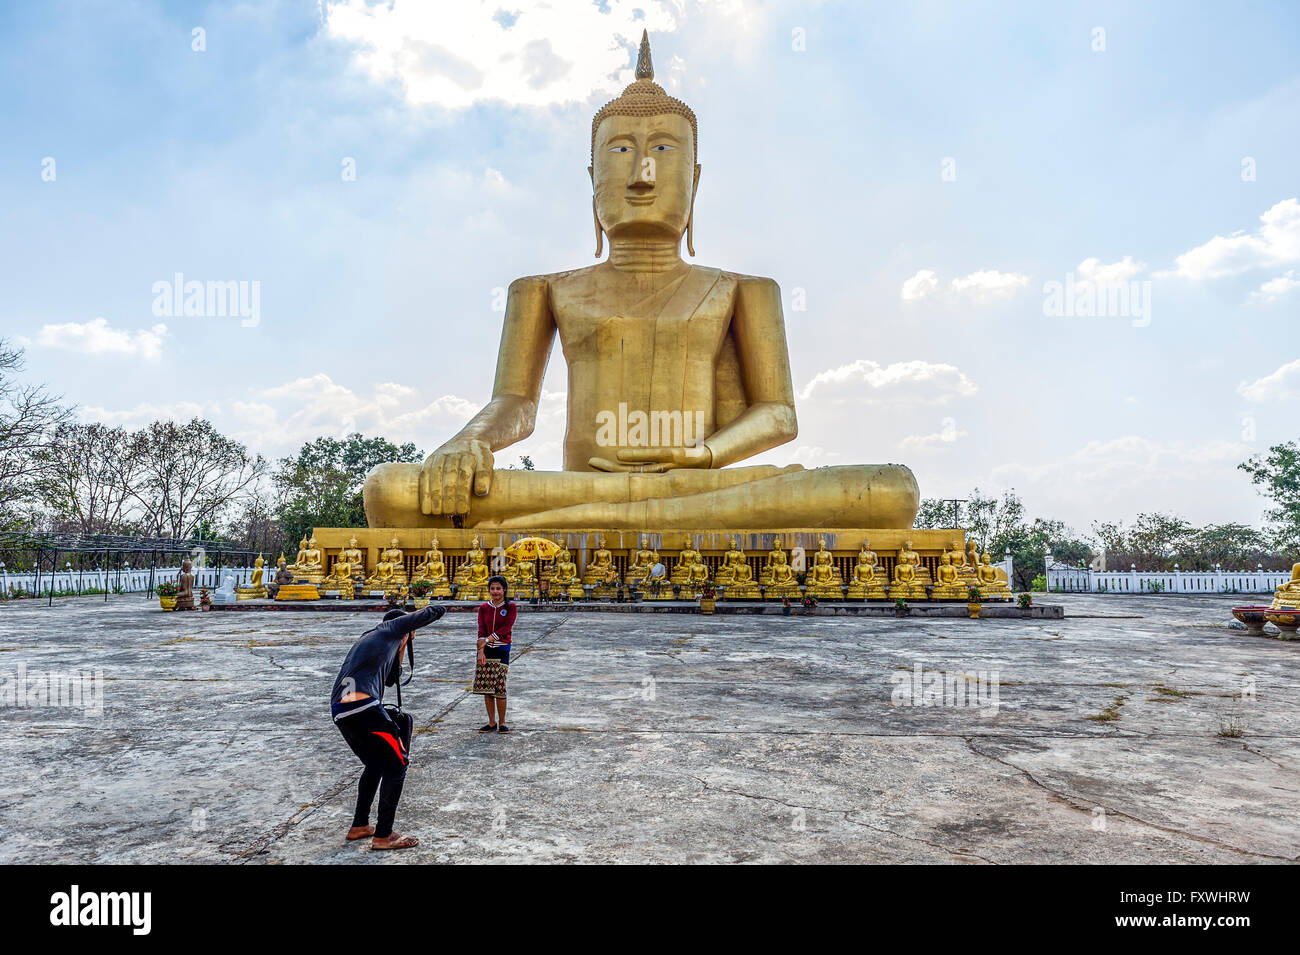 Asia. South-East Asia. Laos. Pakse. Young Lao woman being photographed front of o big Buddha statue. - Stock Image